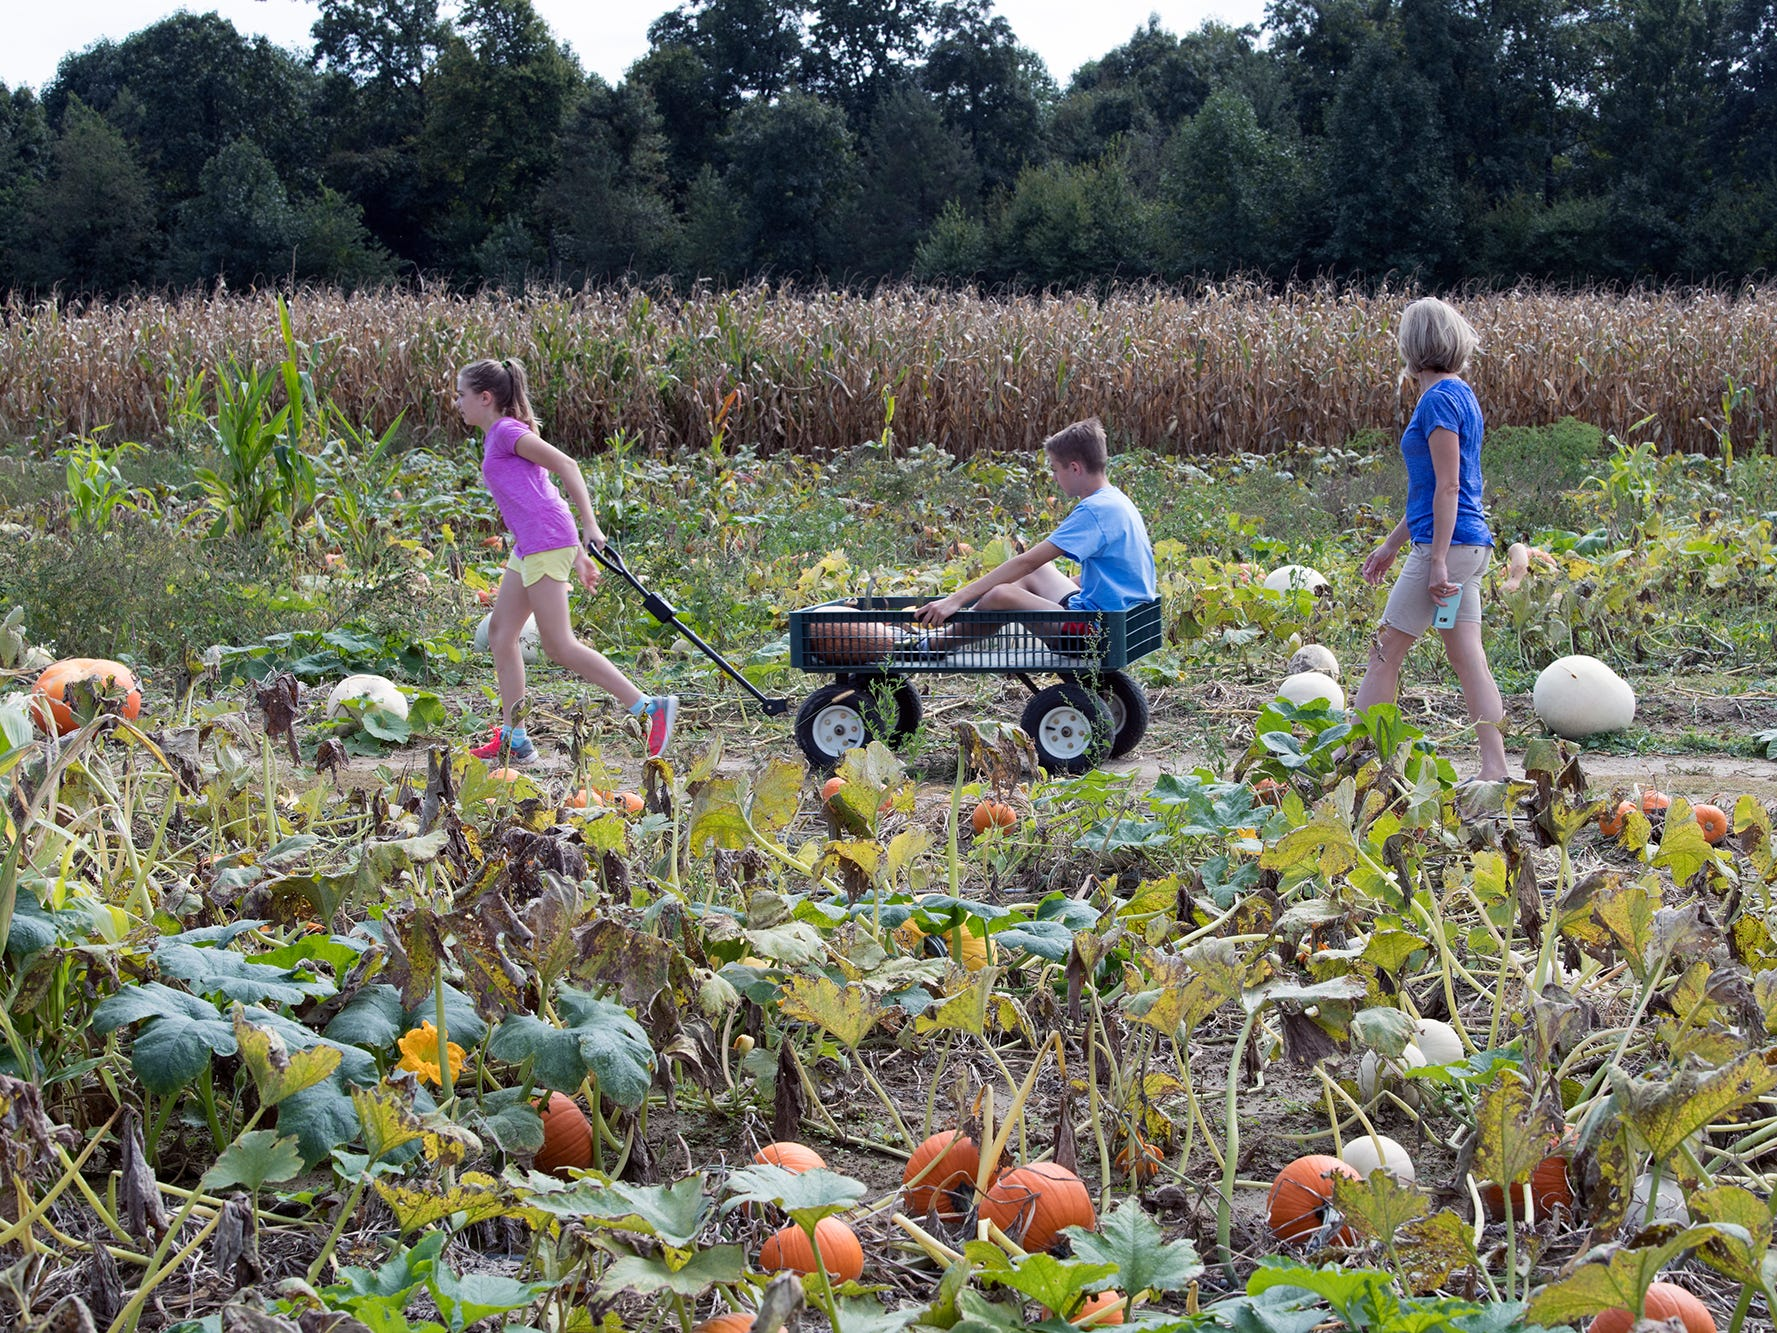 A wagon ride through the pumkin patch at Paulus Orchards in Monaghan Township Sunday September 30, 2018.